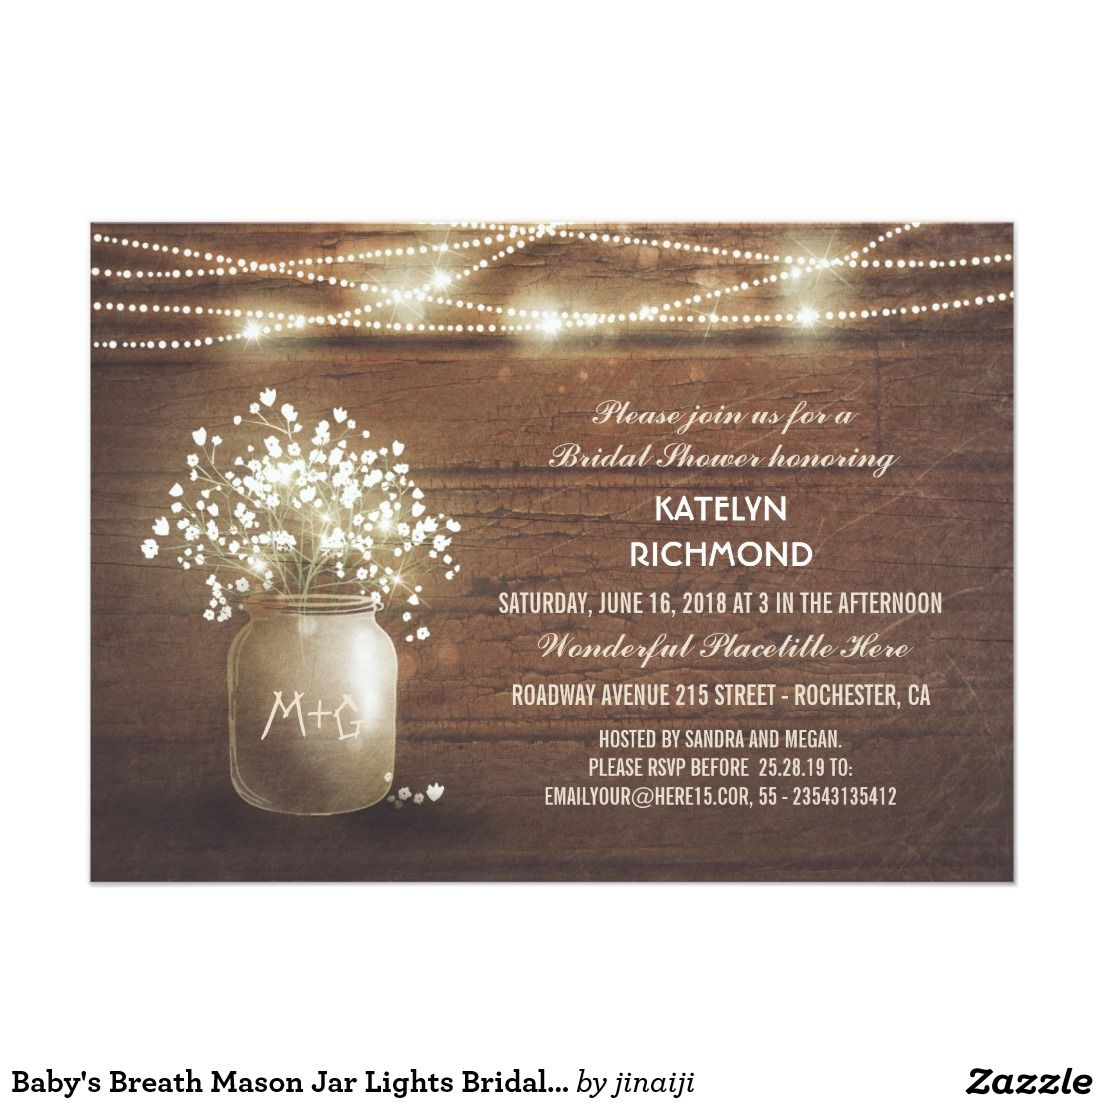 Lovely bridal shower invitation features bright string lights